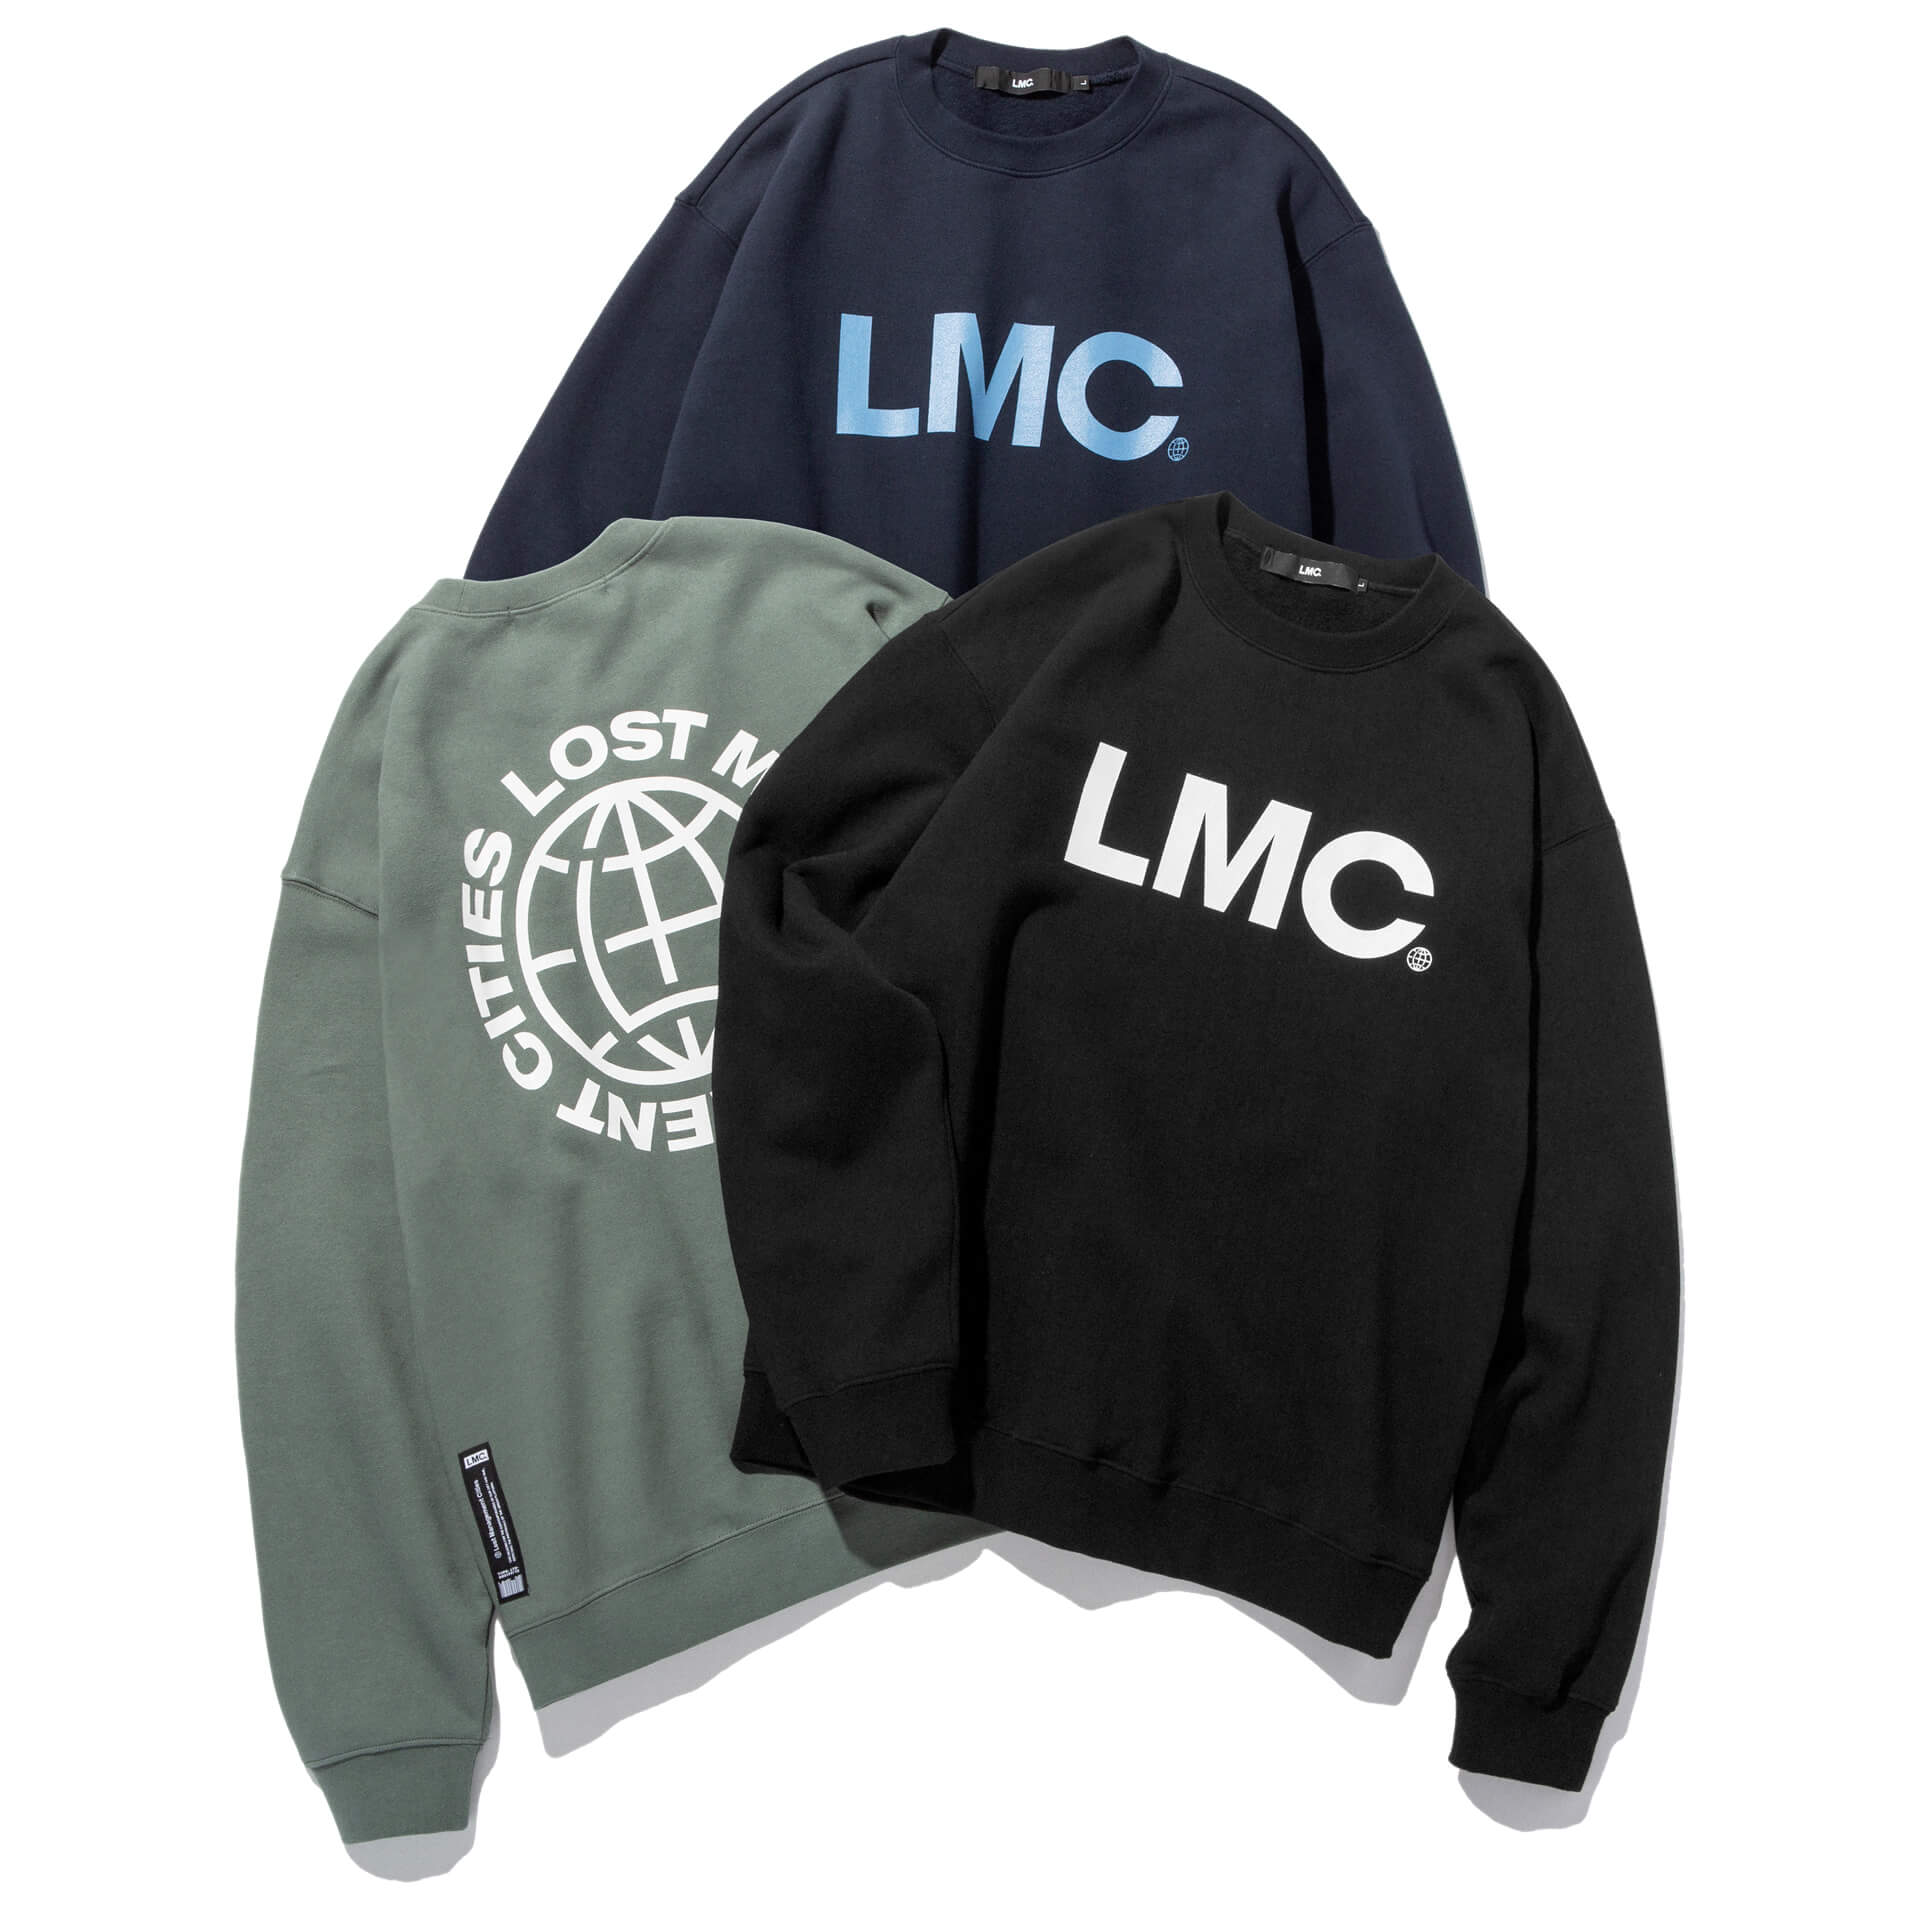 엘엠씨(LMC) LMC OG WHEEL SWEATSHIRT black